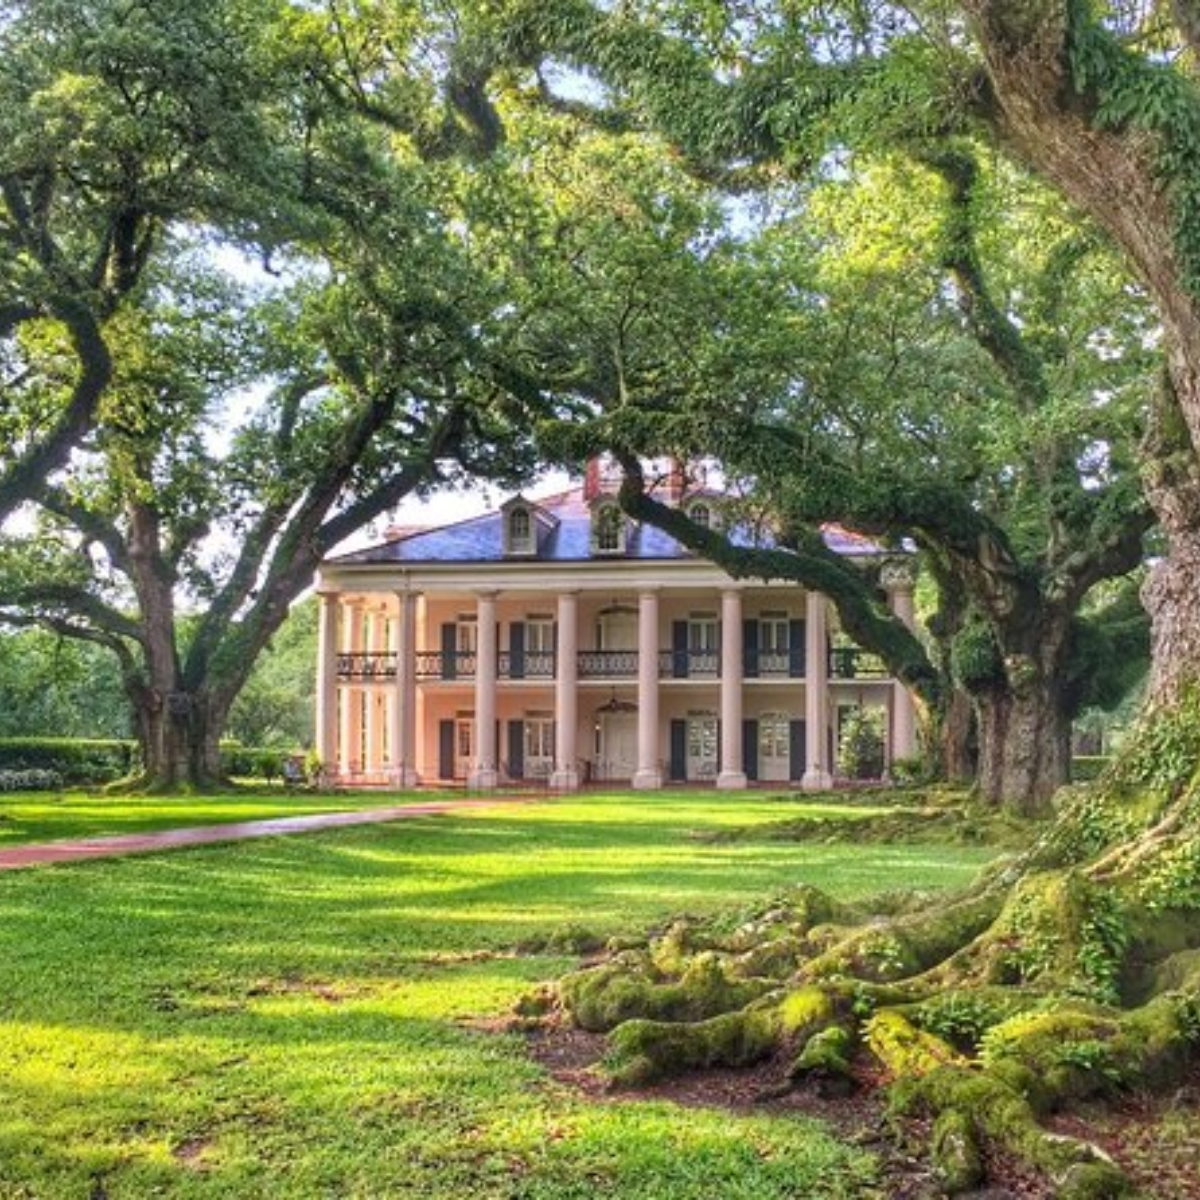 Tour of Oak Alley Plantation Images